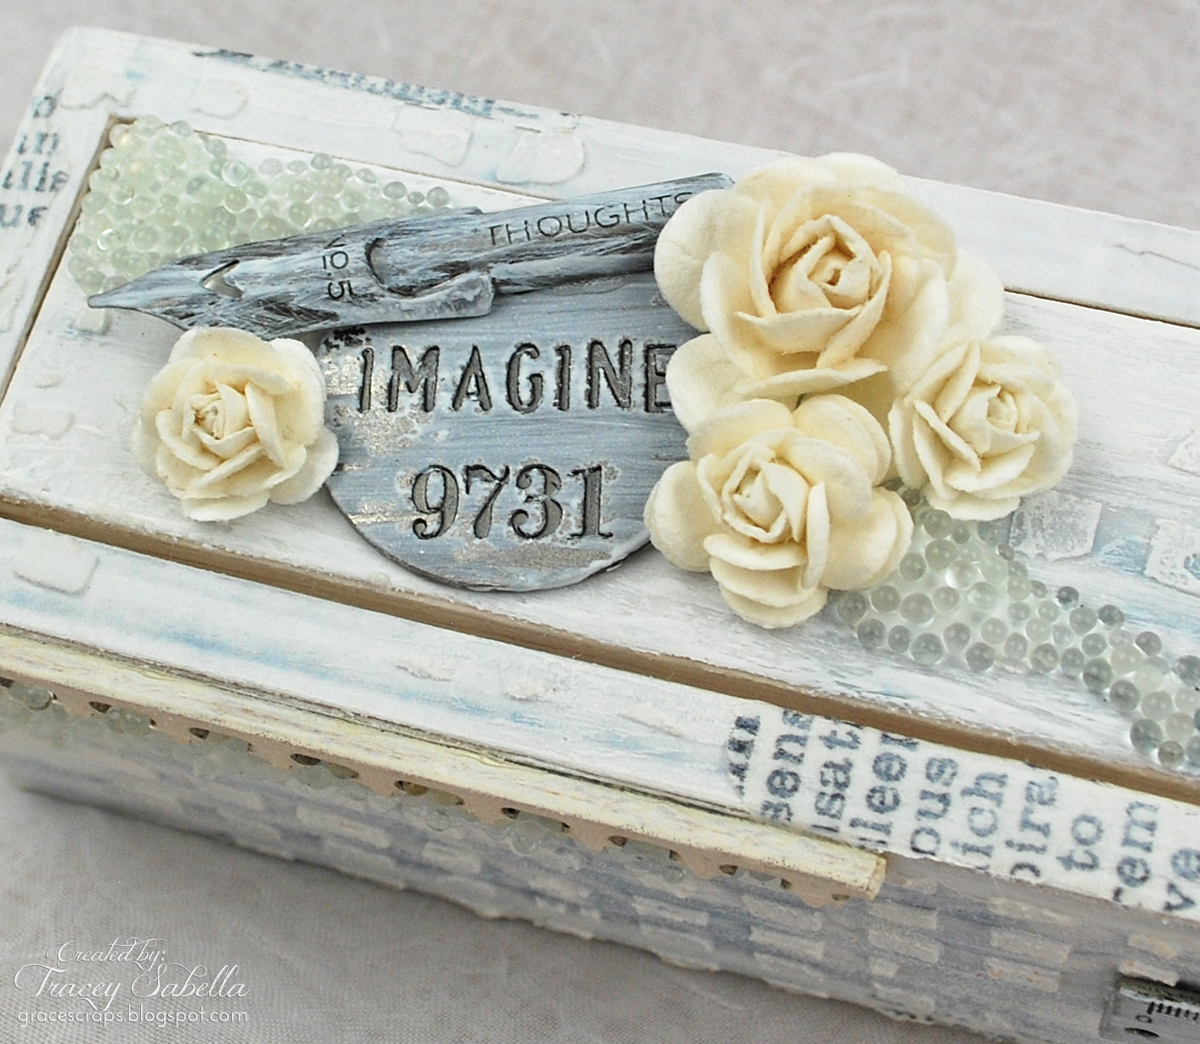 Pencil Box by Tracey Sabella for Helmar. Mixed media, Wild Orchid Crafts, 13 Arts, Tim Holtz